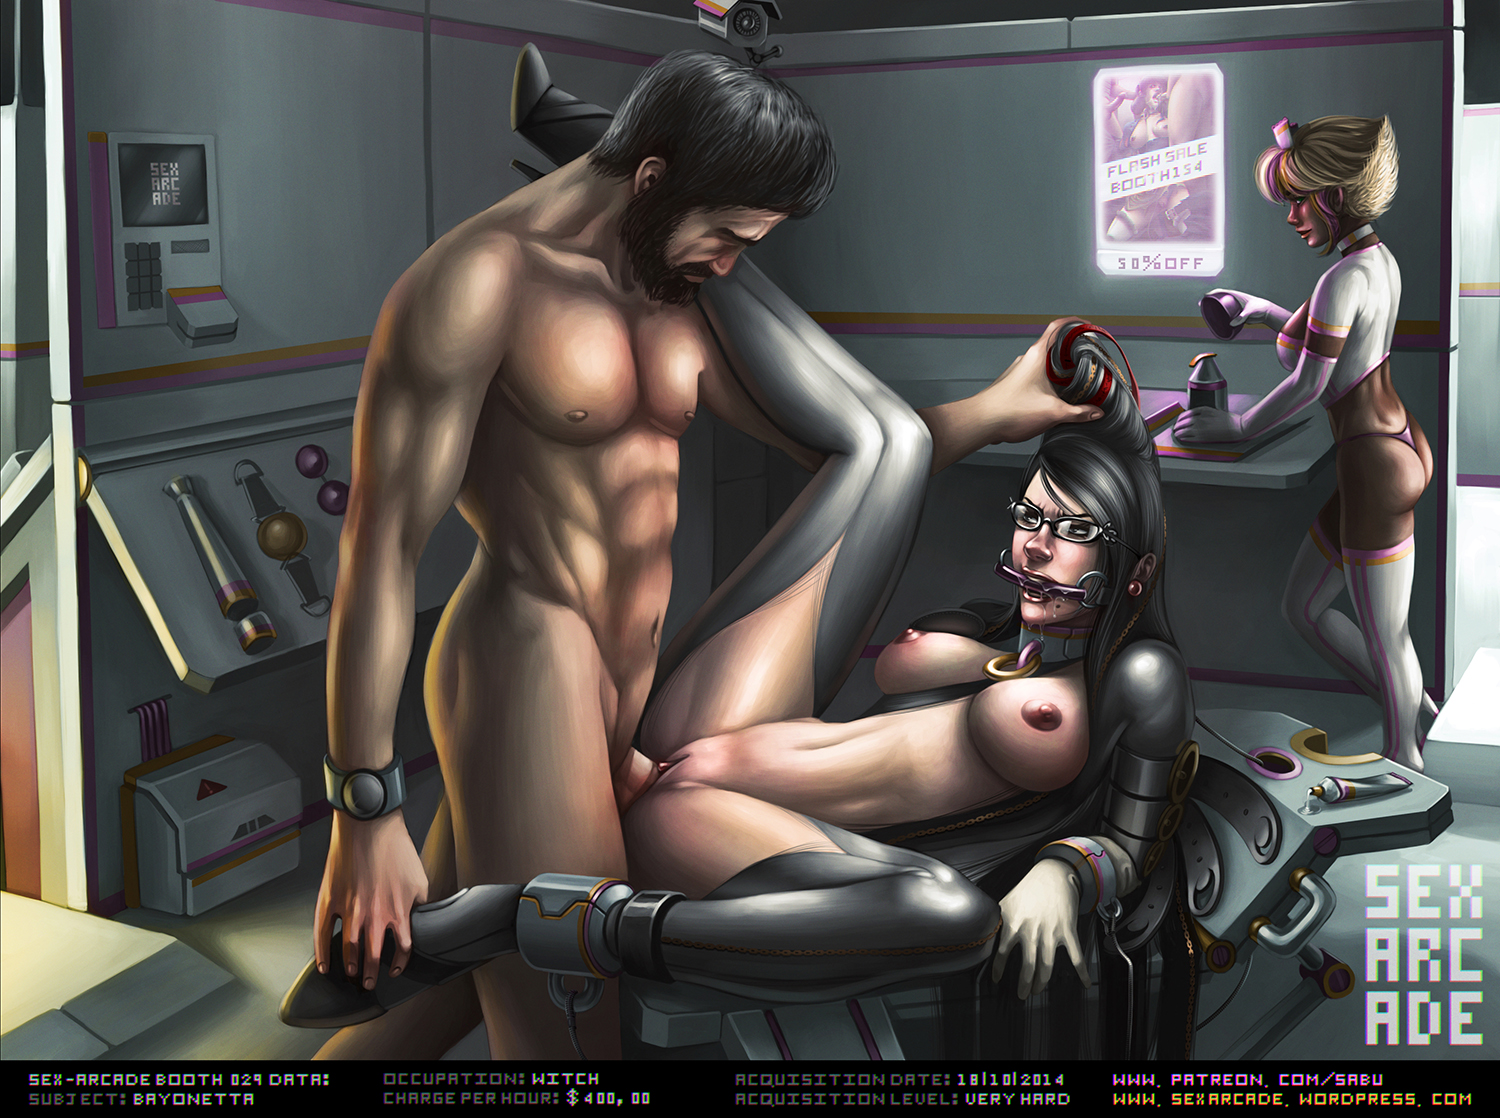 Sex-arcade Booth 029: Bayonetta